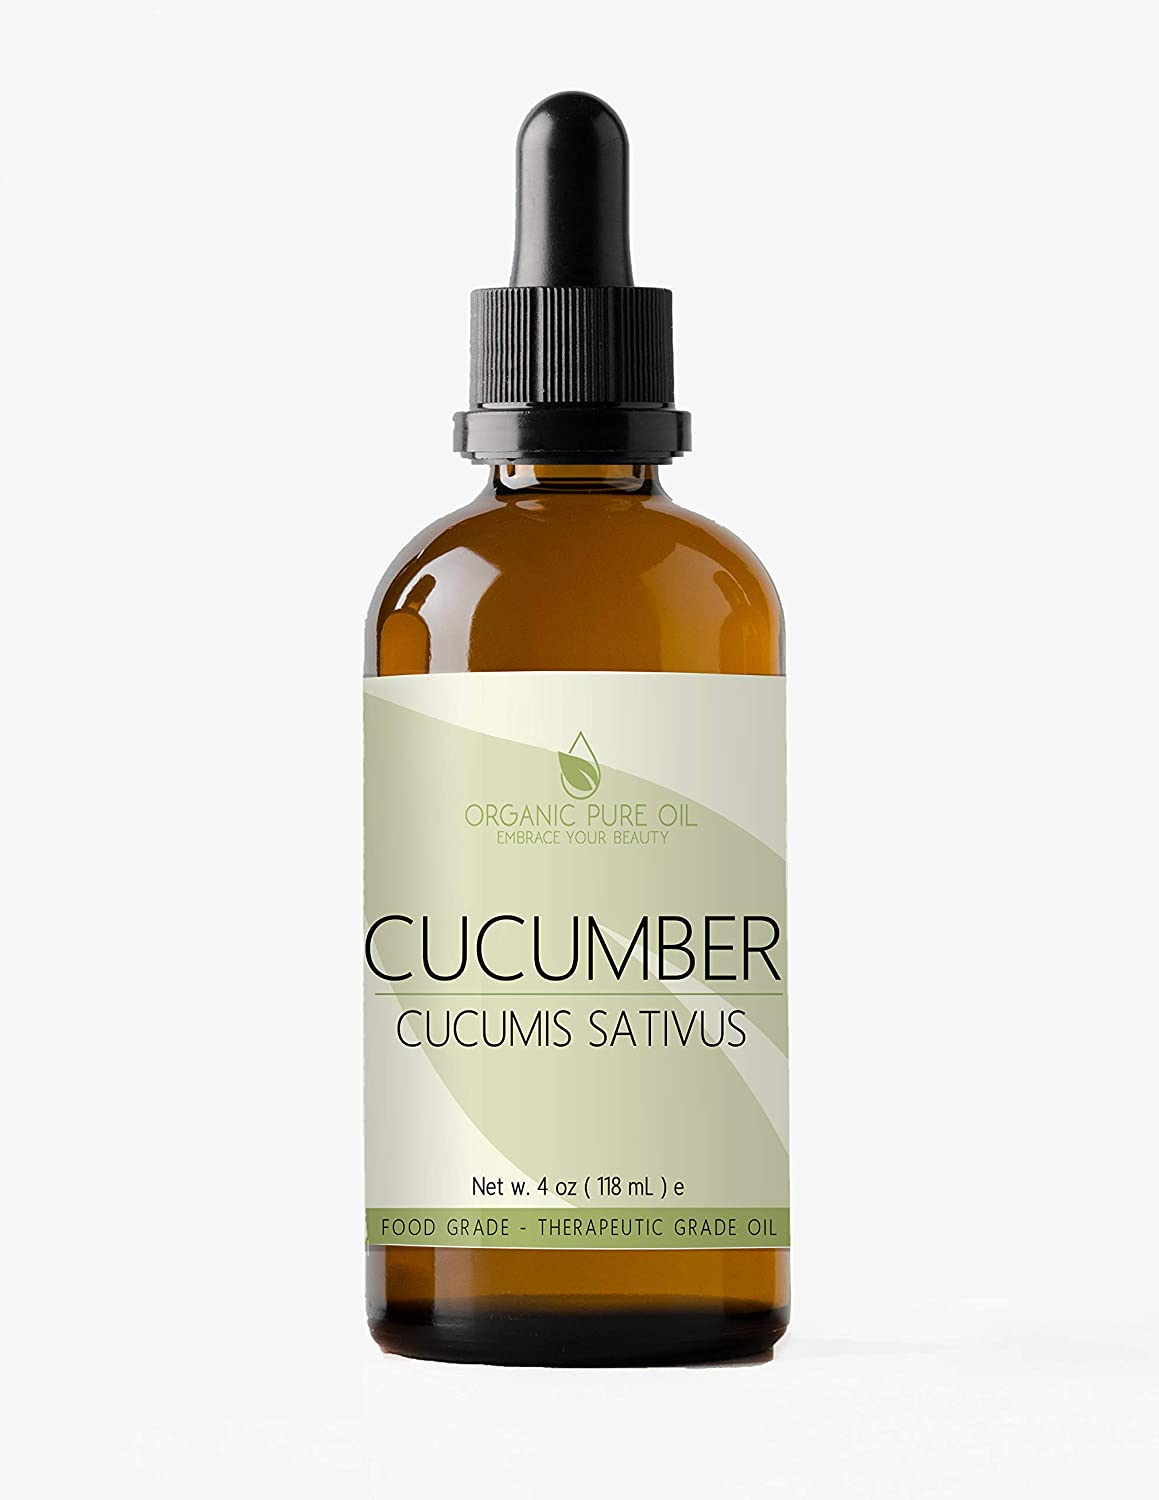 Cucumber Seed Oil 4 oz Organic 100% Pure Natural Cucumber Oil Cold Pressed Unrefined Hair Split Ends Skin Dry Skin Purifying Effect Premium Pharmaceutical Top Grade A By Organic Pure Oil